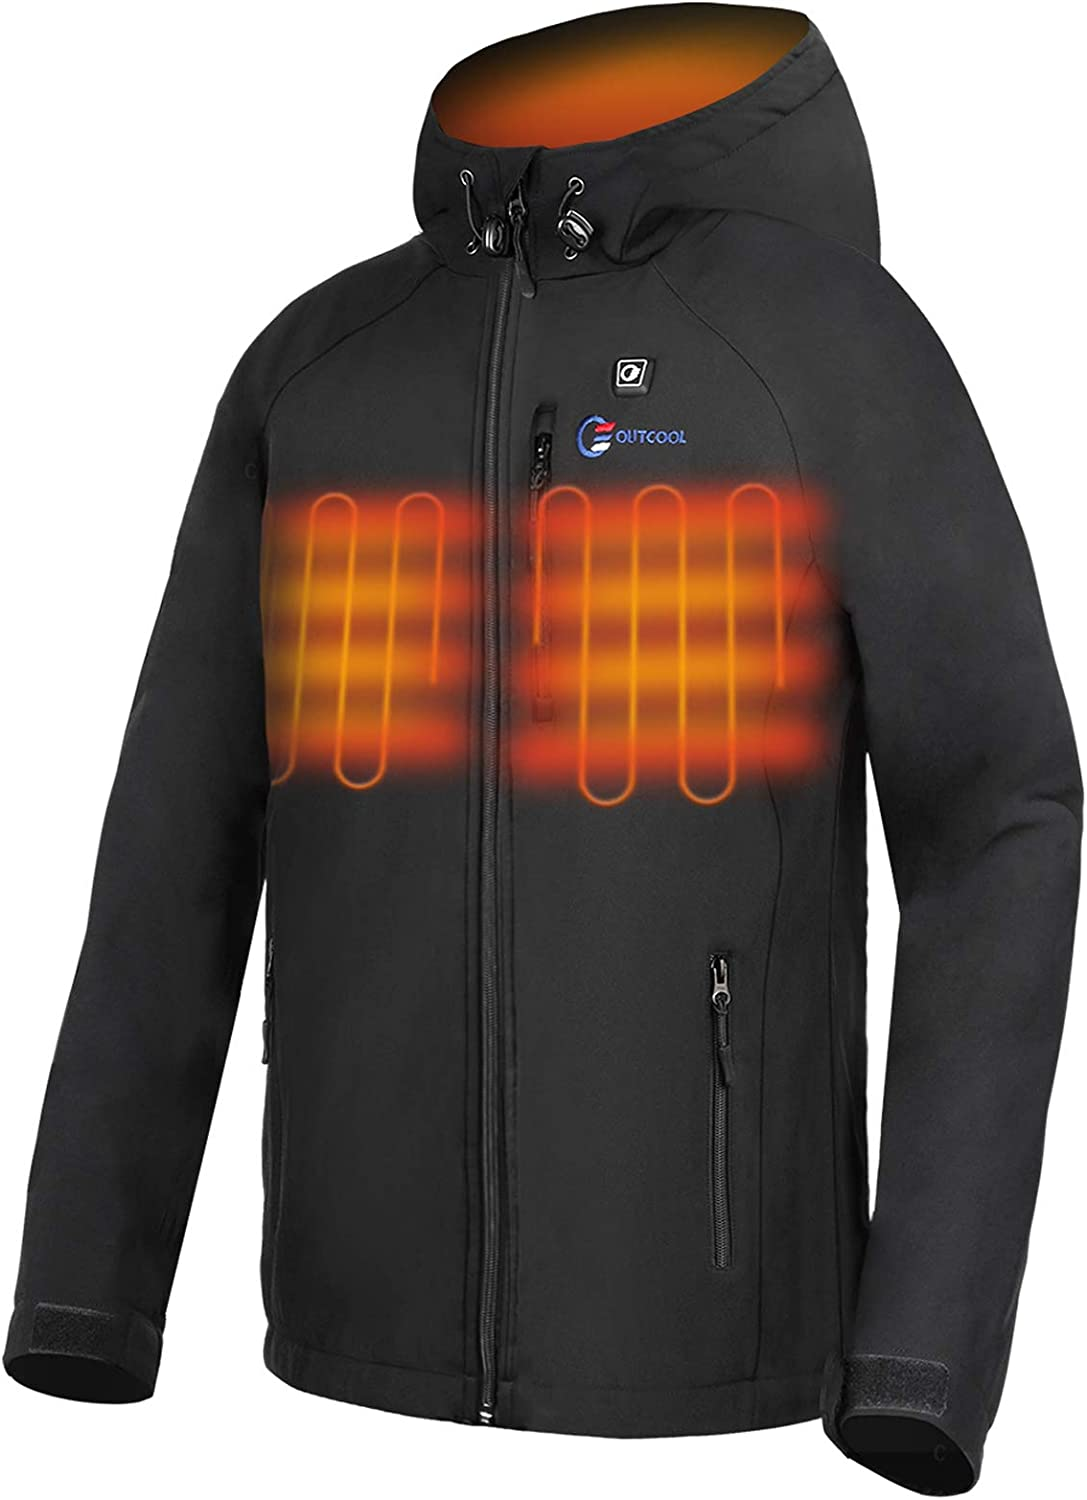 OUTCOOL Men's Heated Jacket with Hood Heating Jacket for Men (Type:YJ-524A-MJ)